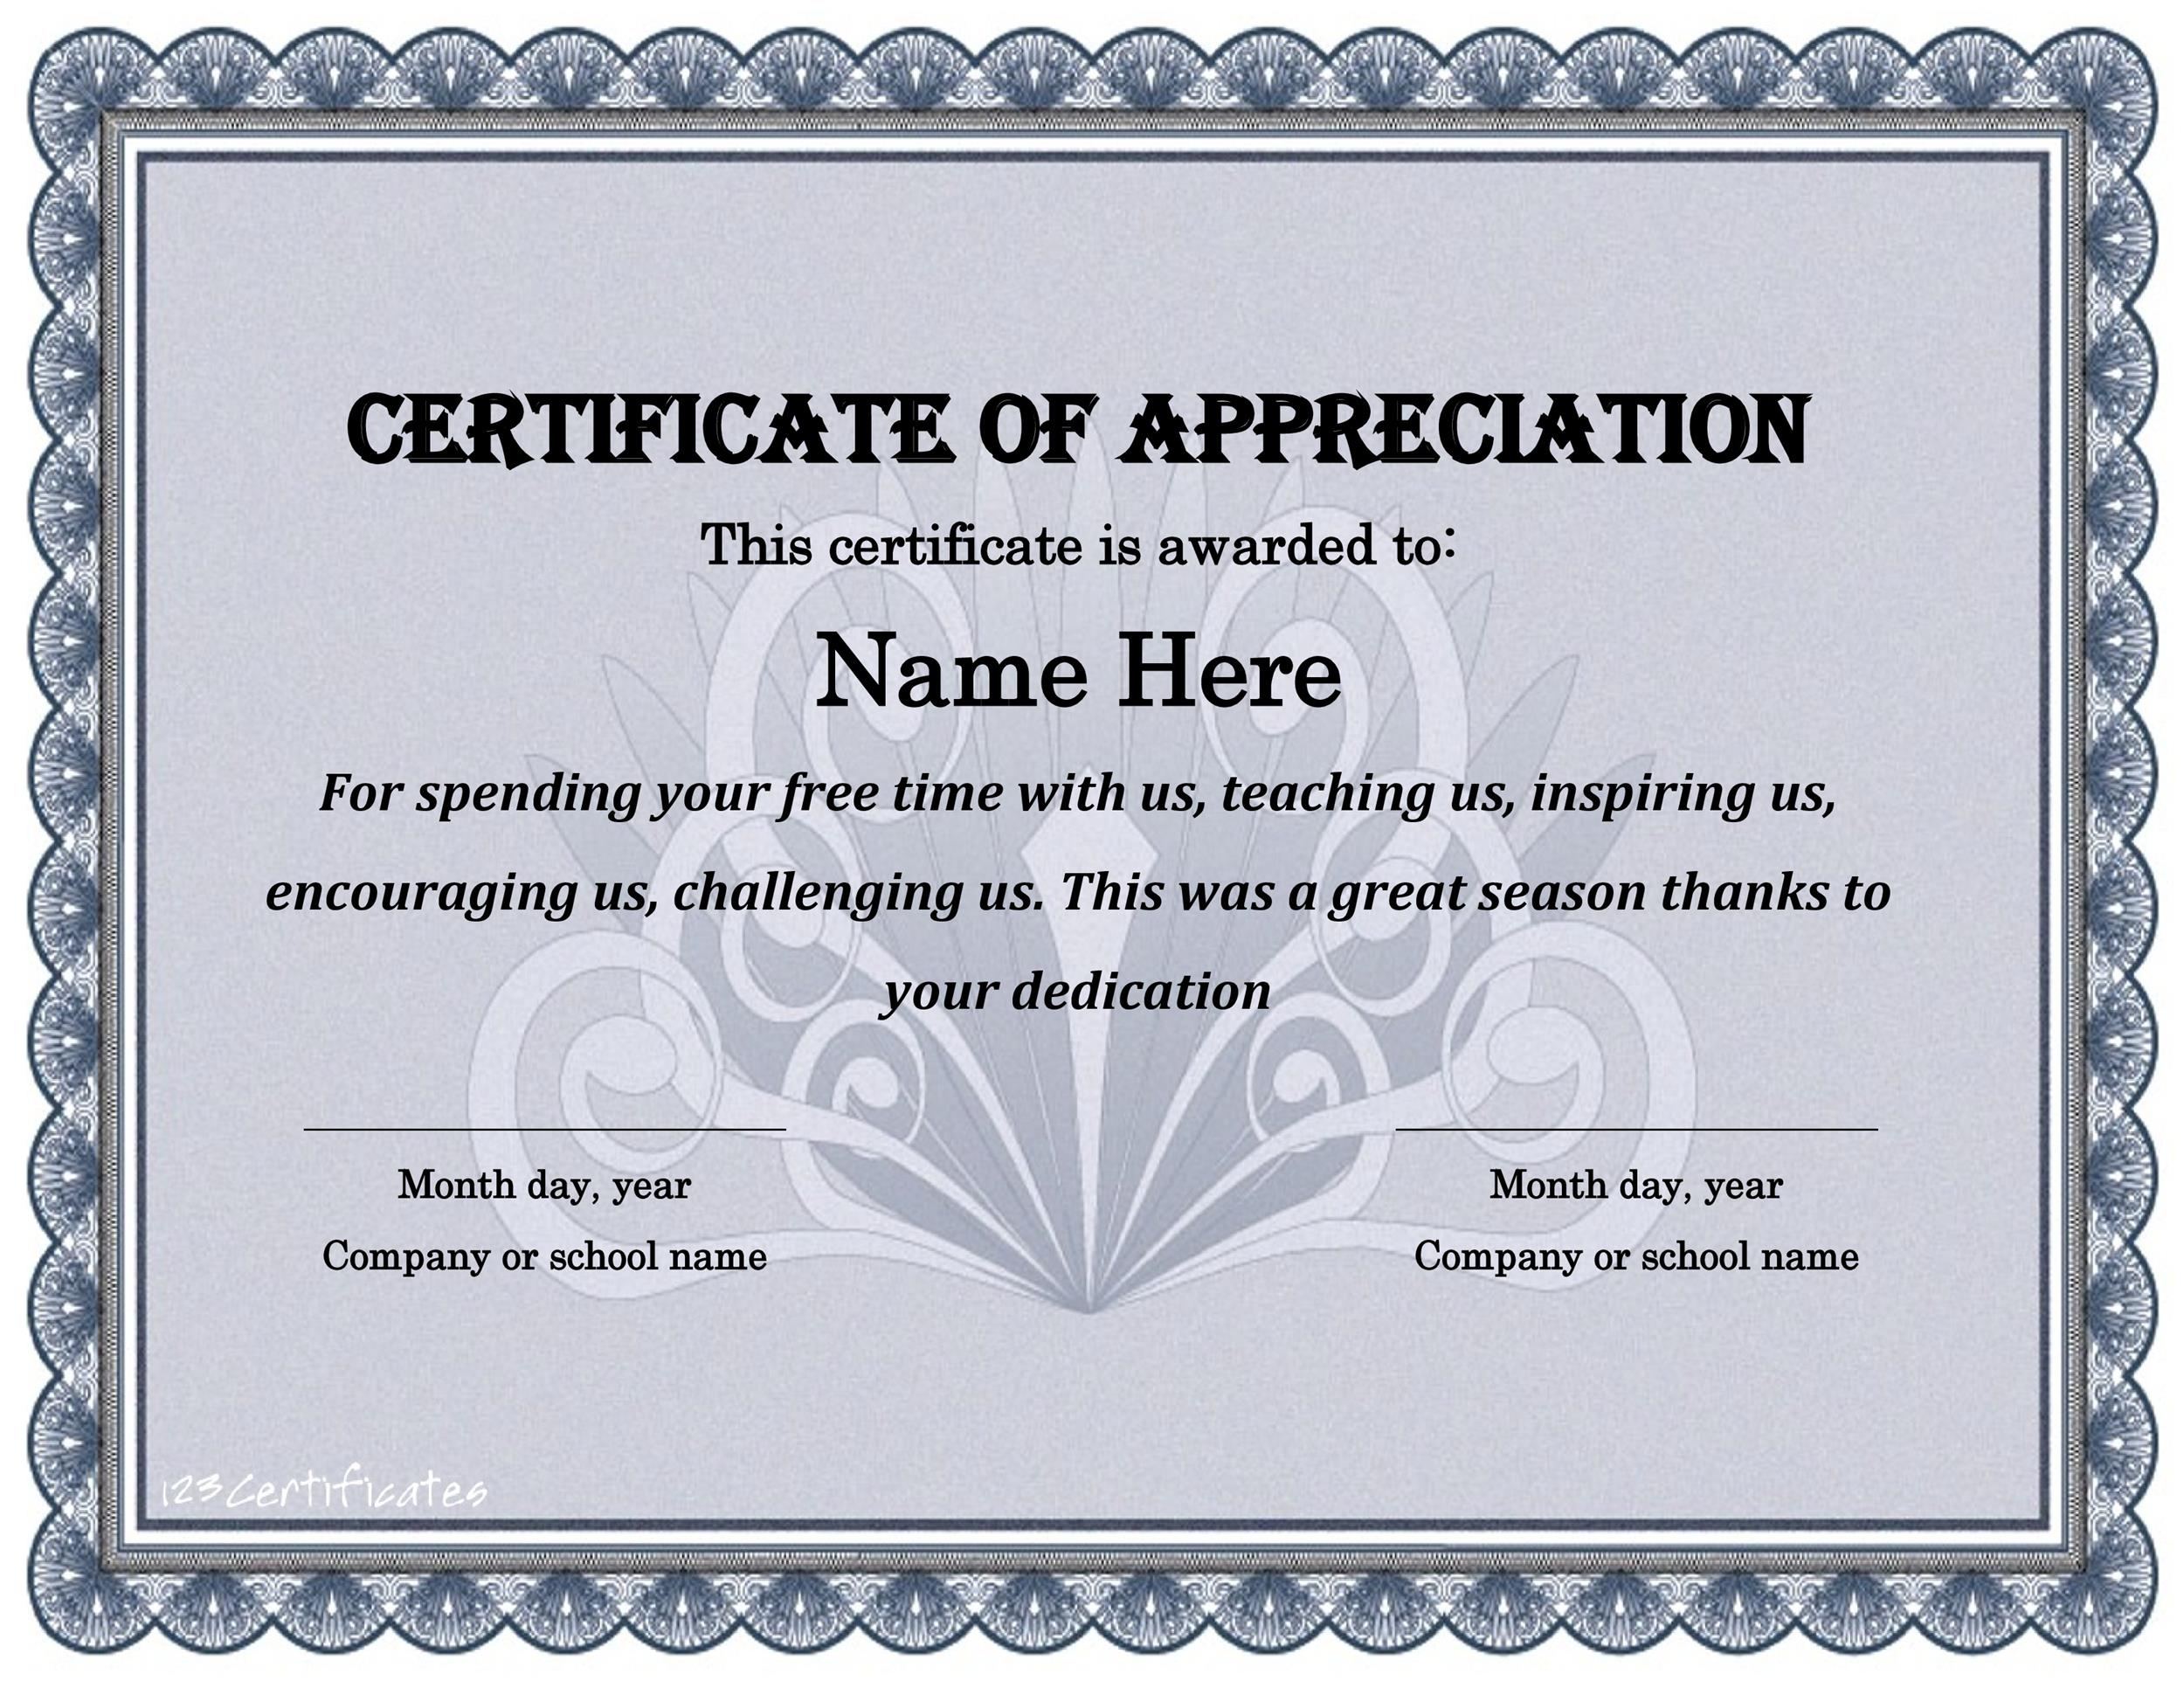 a certificate of thanks